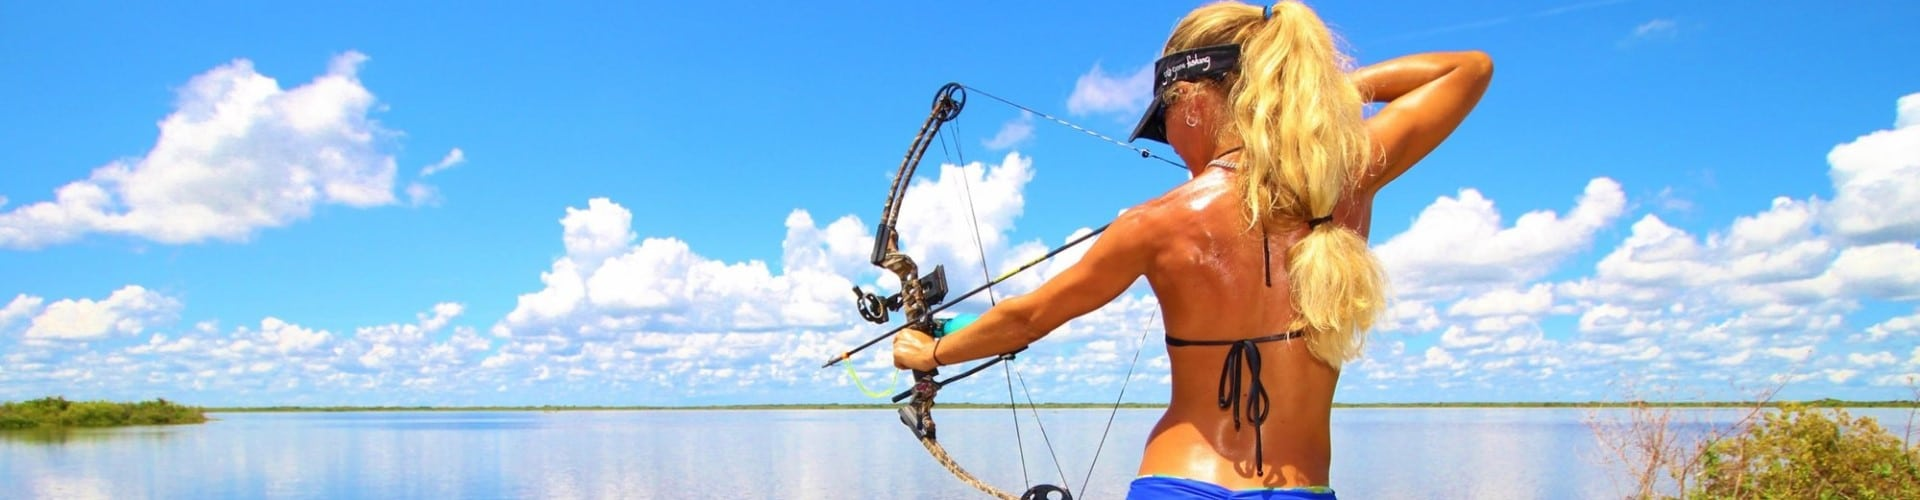 Best Bowfishing Bows Reviewed in Detail